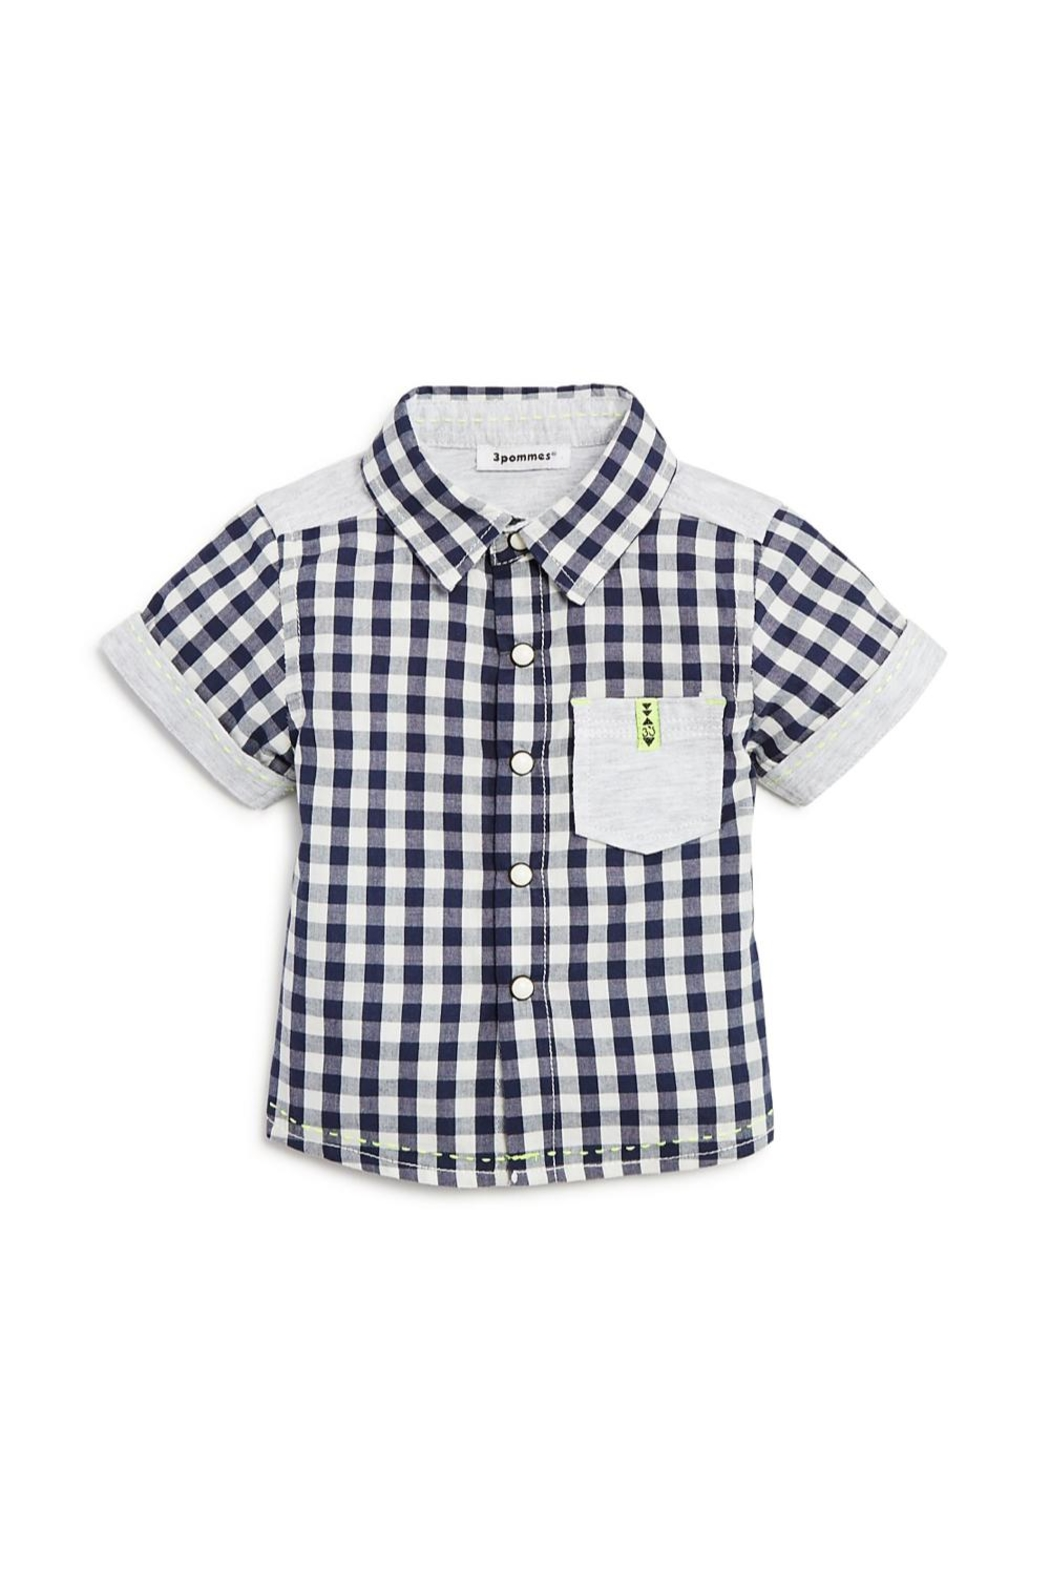 3 Pommes Gingham Short-Sleeve Shirt - Main Image